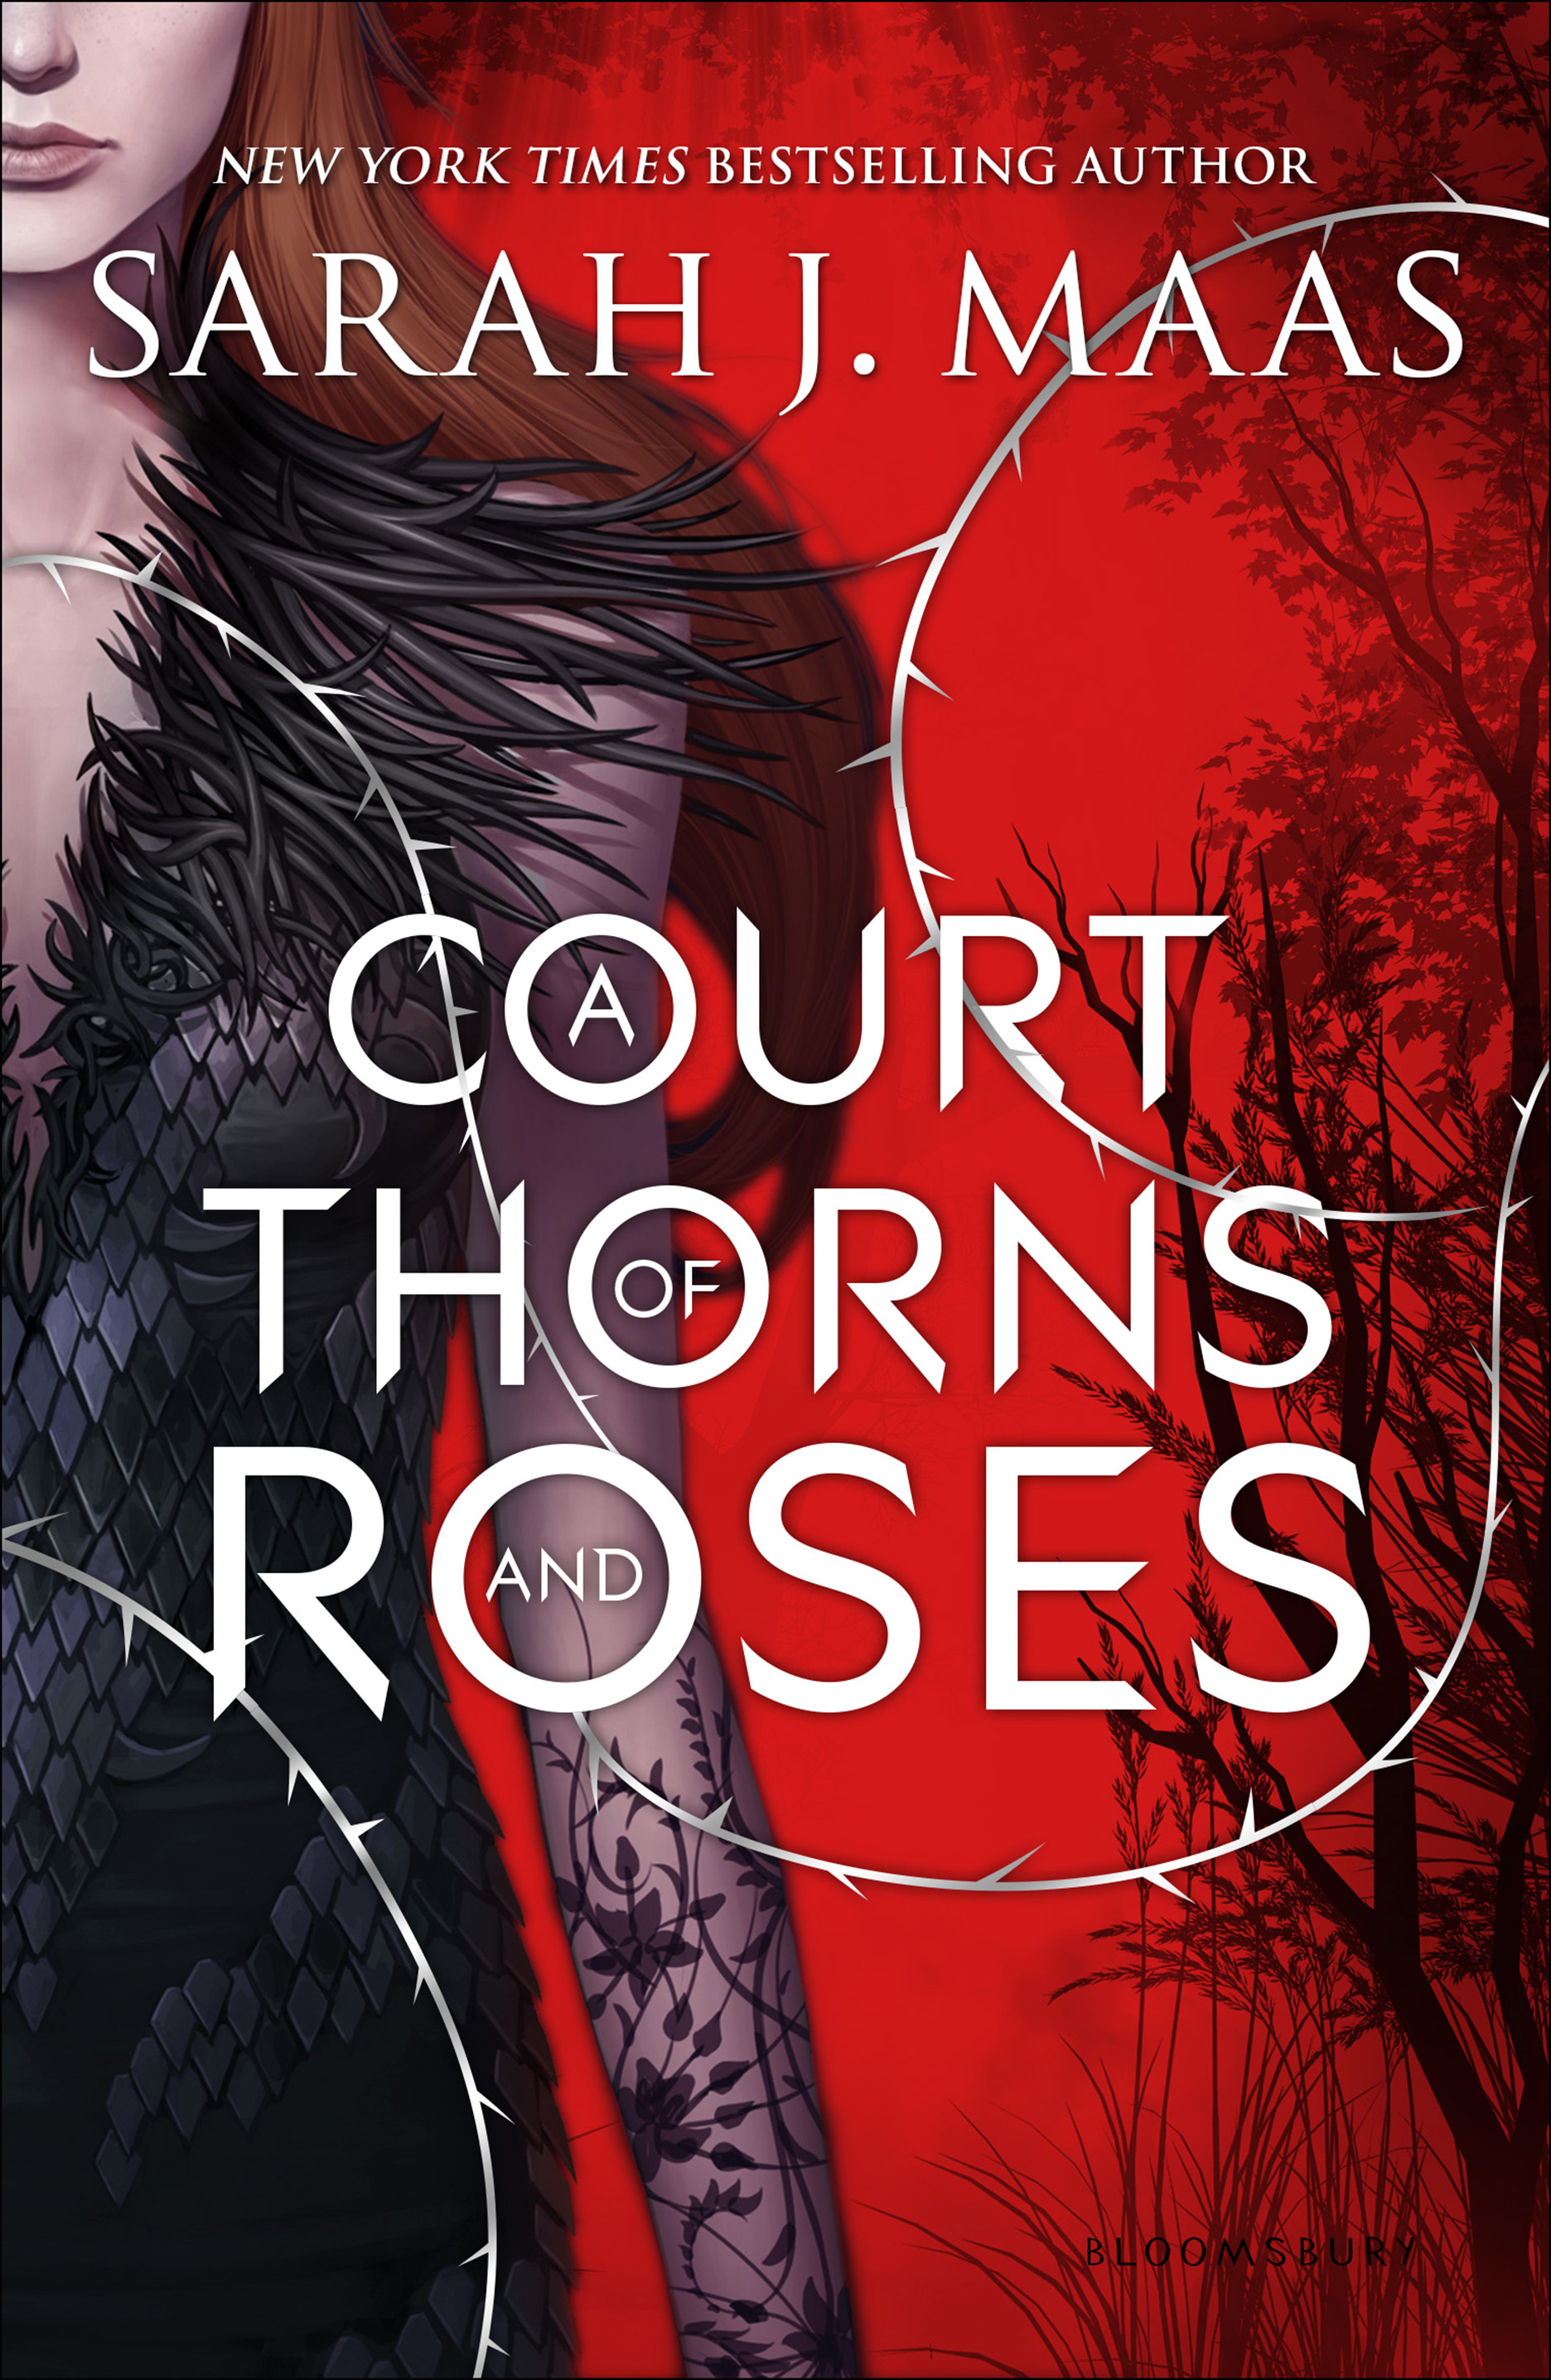 BWW Review: A COURT OF THORNS AND ROSES by Sarah J. Maas